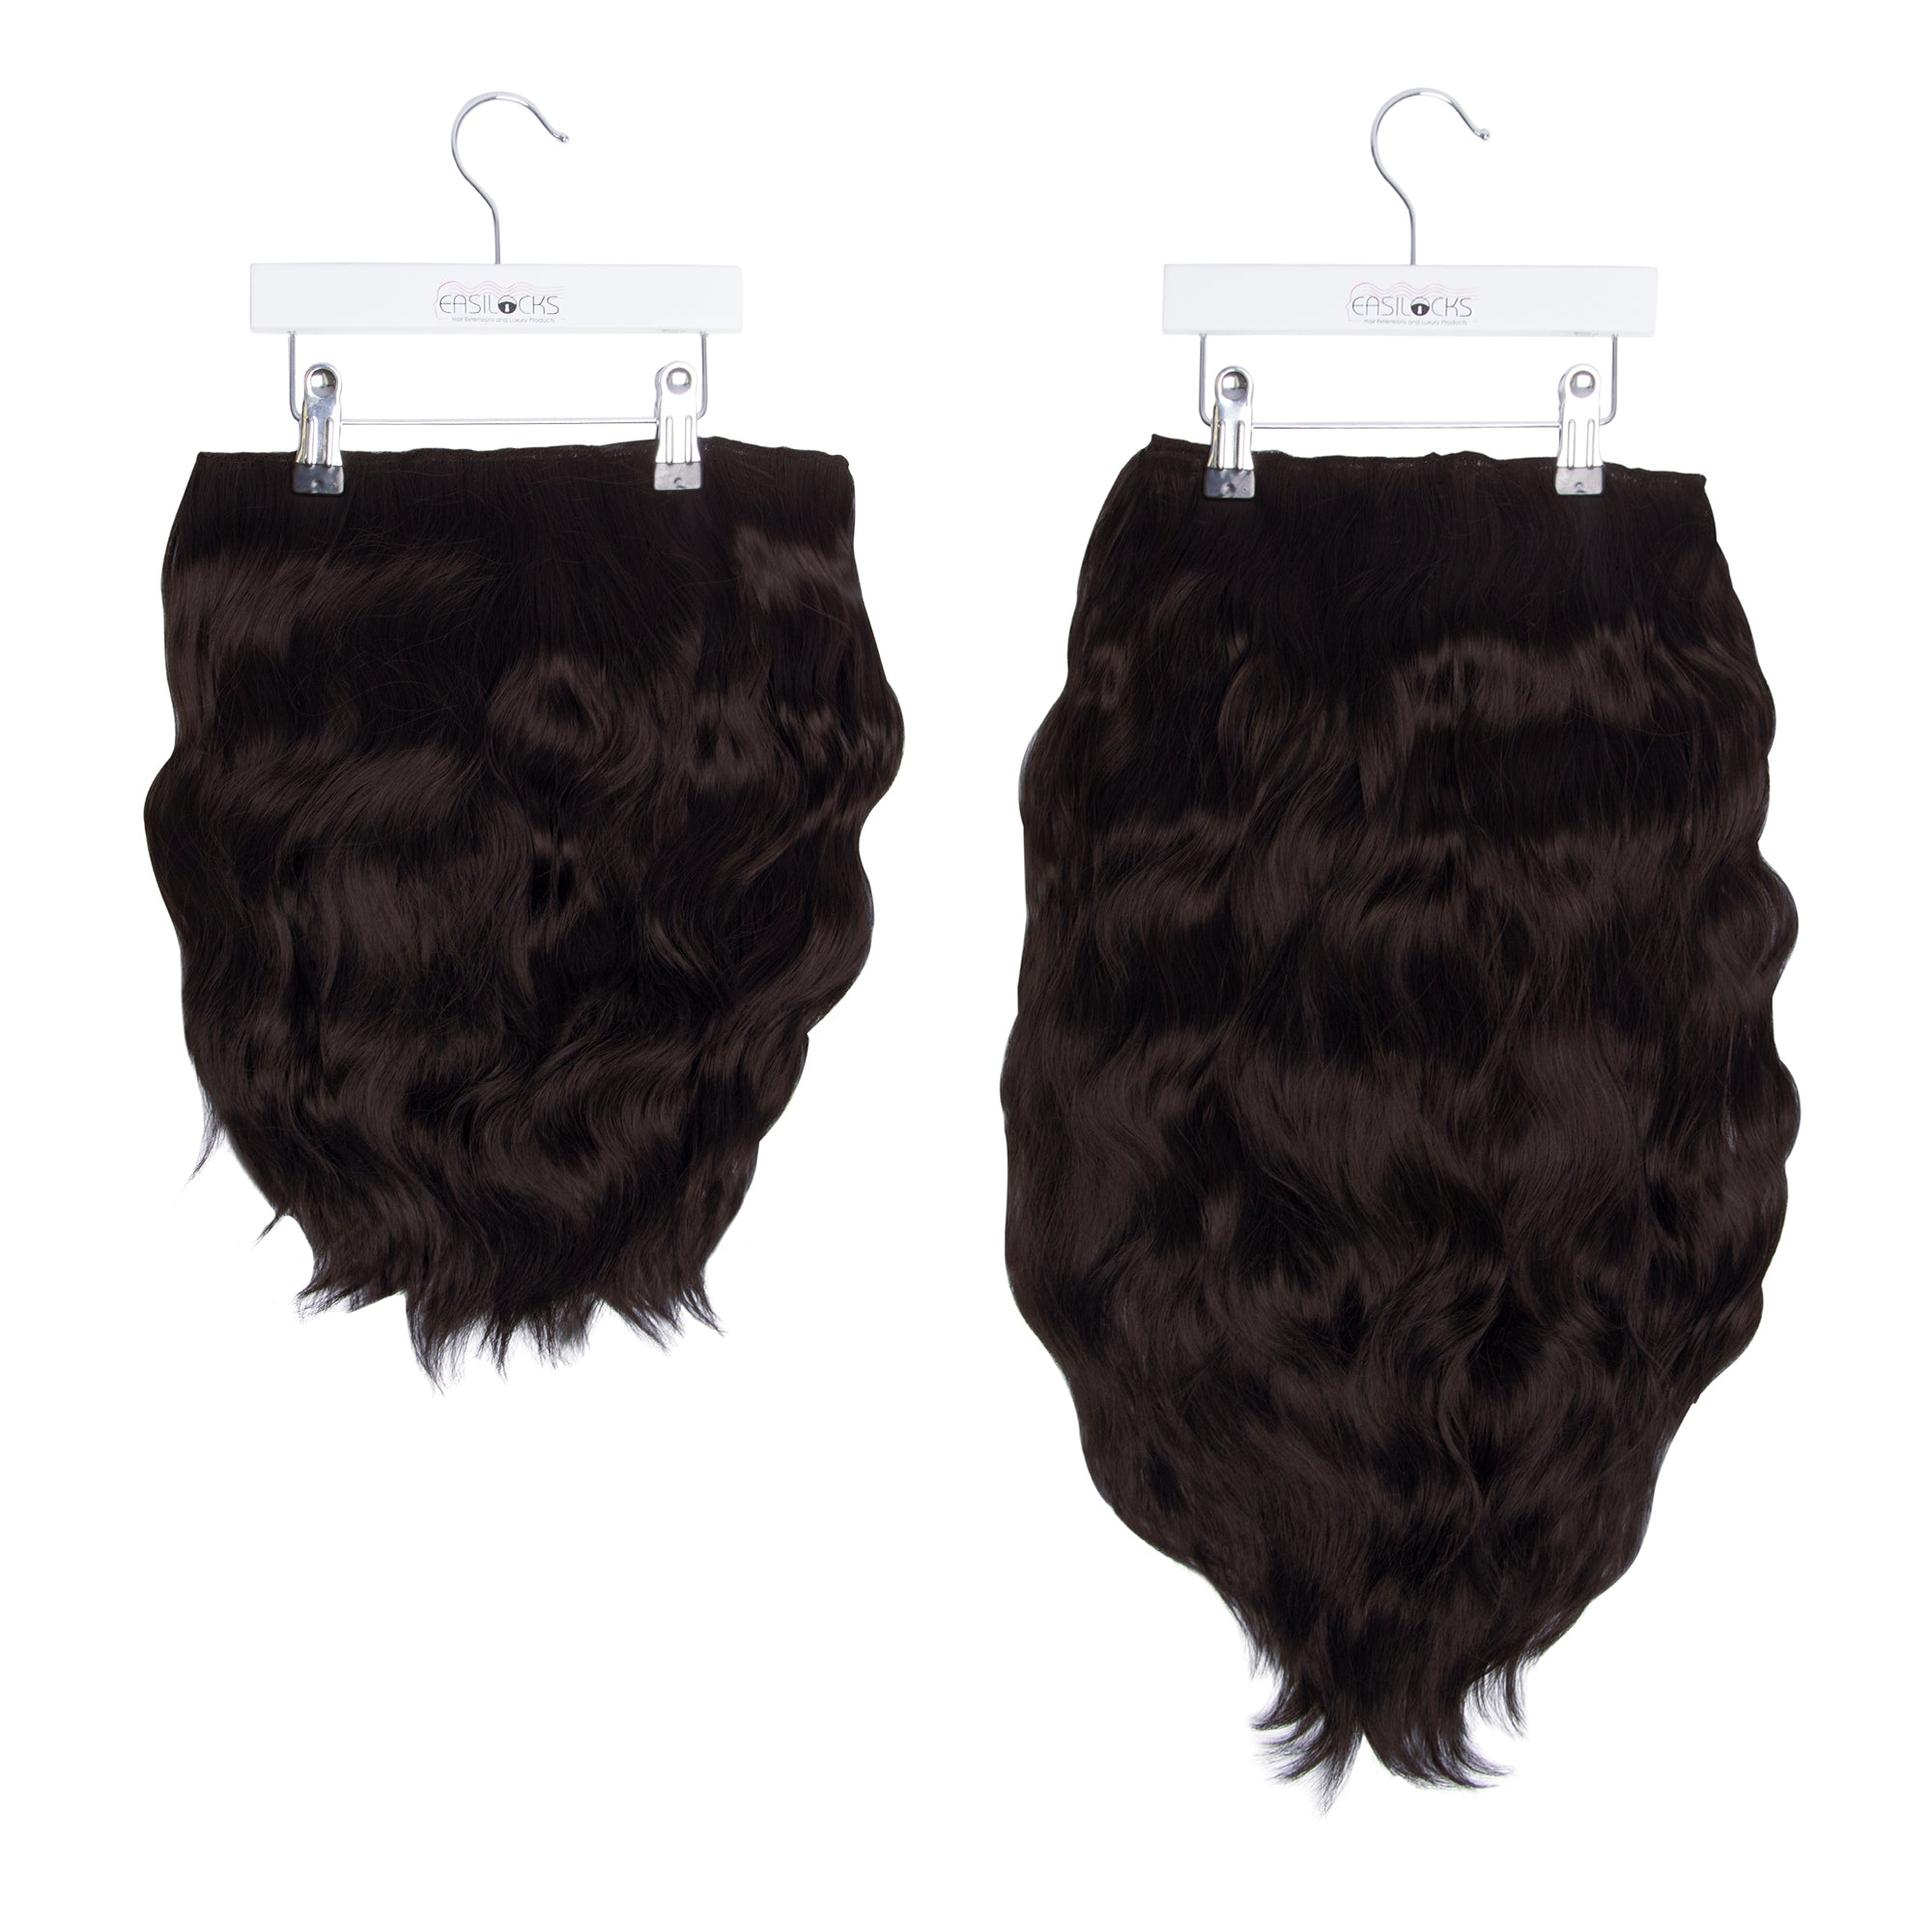 "Miracle Makeover HD Fibre Clip In Hair Extensions - 14"" & 22"" - Dark Chocolate/Darkest Brown (1319143276624)"